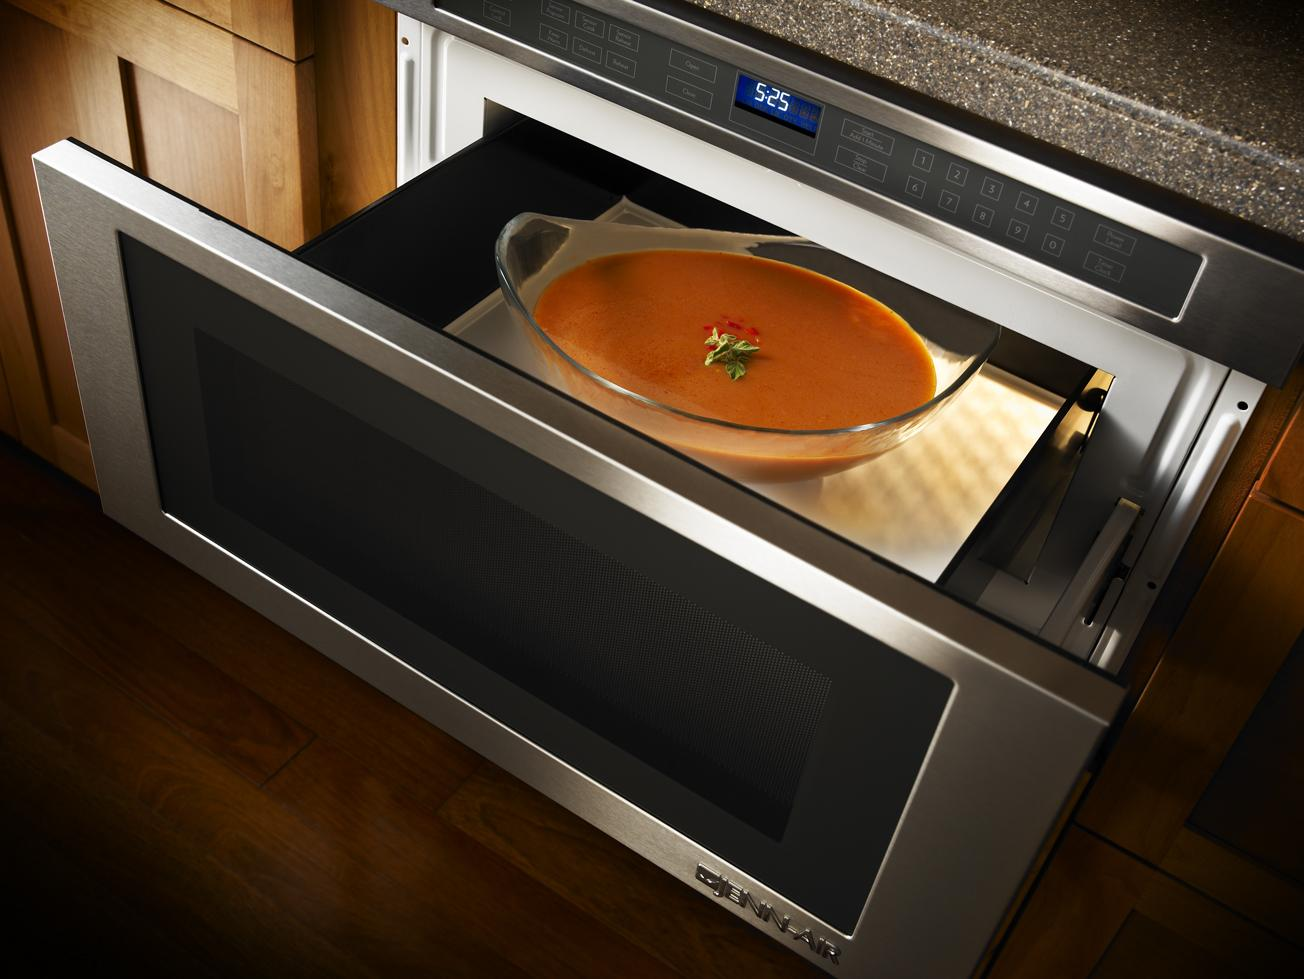 Jmd2124ws Jenn Air Jmd2124ws Countertop Microwaves